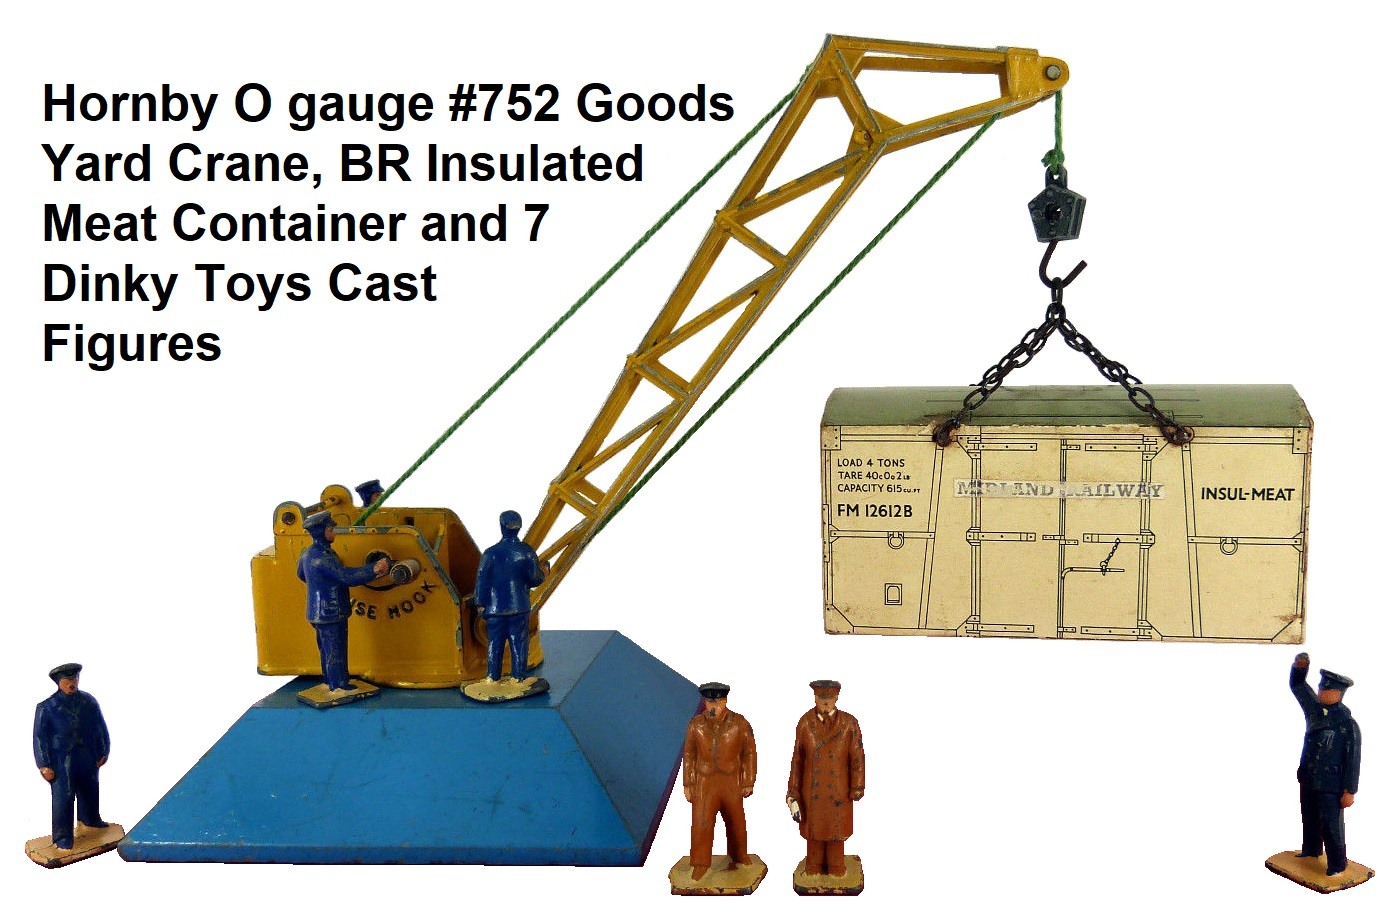 Hornby O gauge Goods Yard Crane #752, BR Insulated Meat Container and 7 Cast Dinky Toys figures